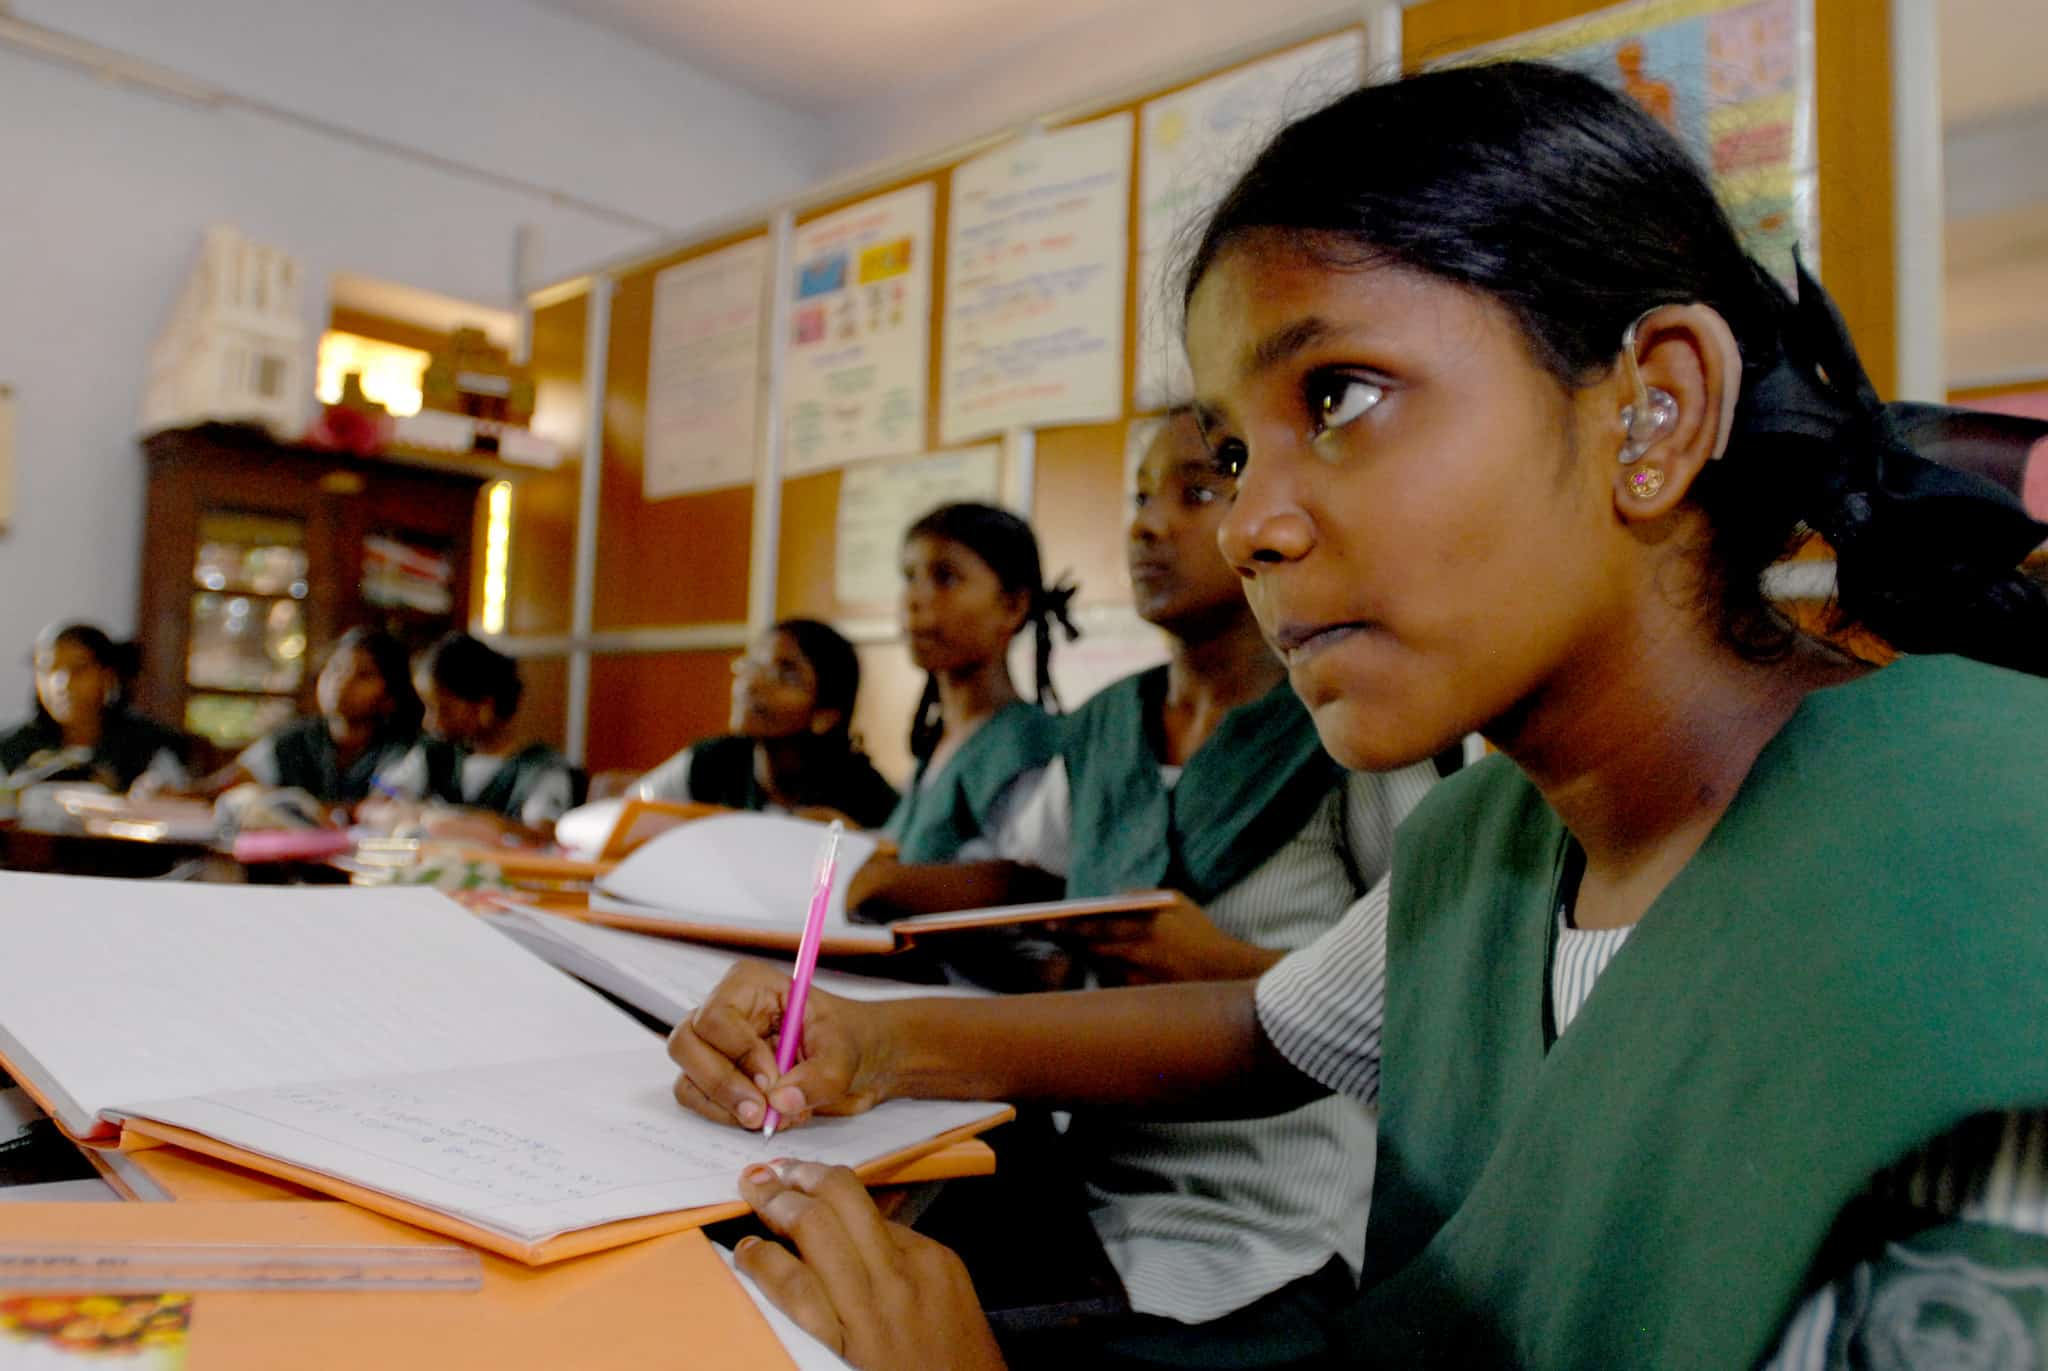 Girls sit at desks in a classroom